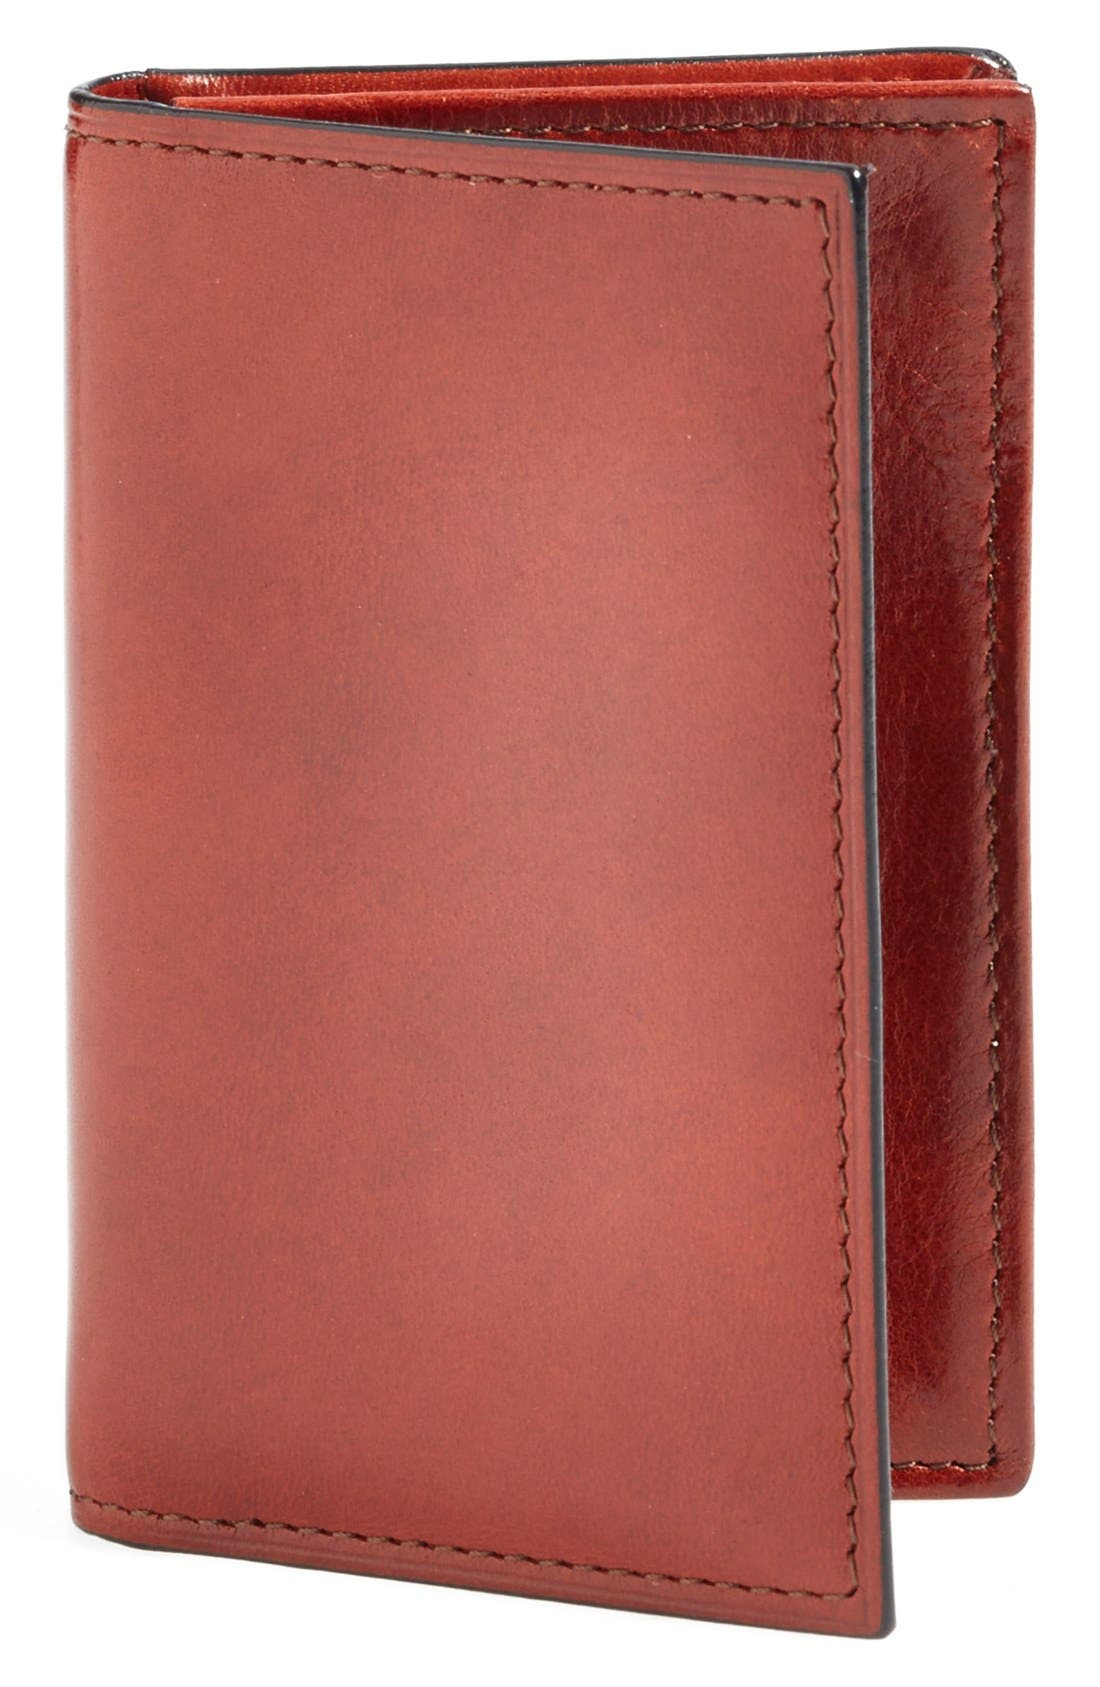 'Old Leather' Gusset Wallet,                             Main thumbnail 3, color,